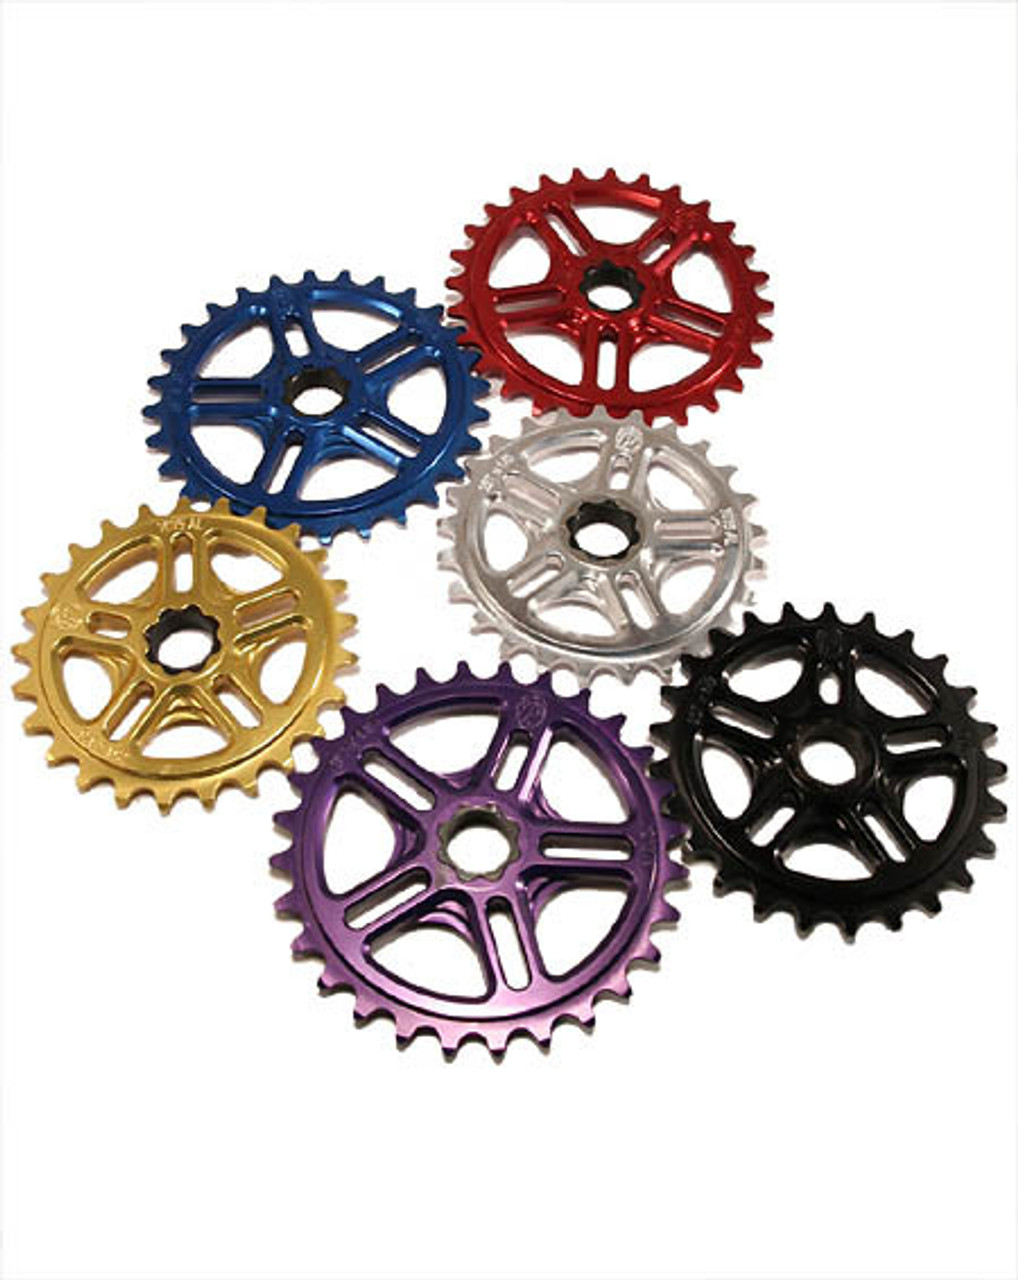 Sprockets and Cogs